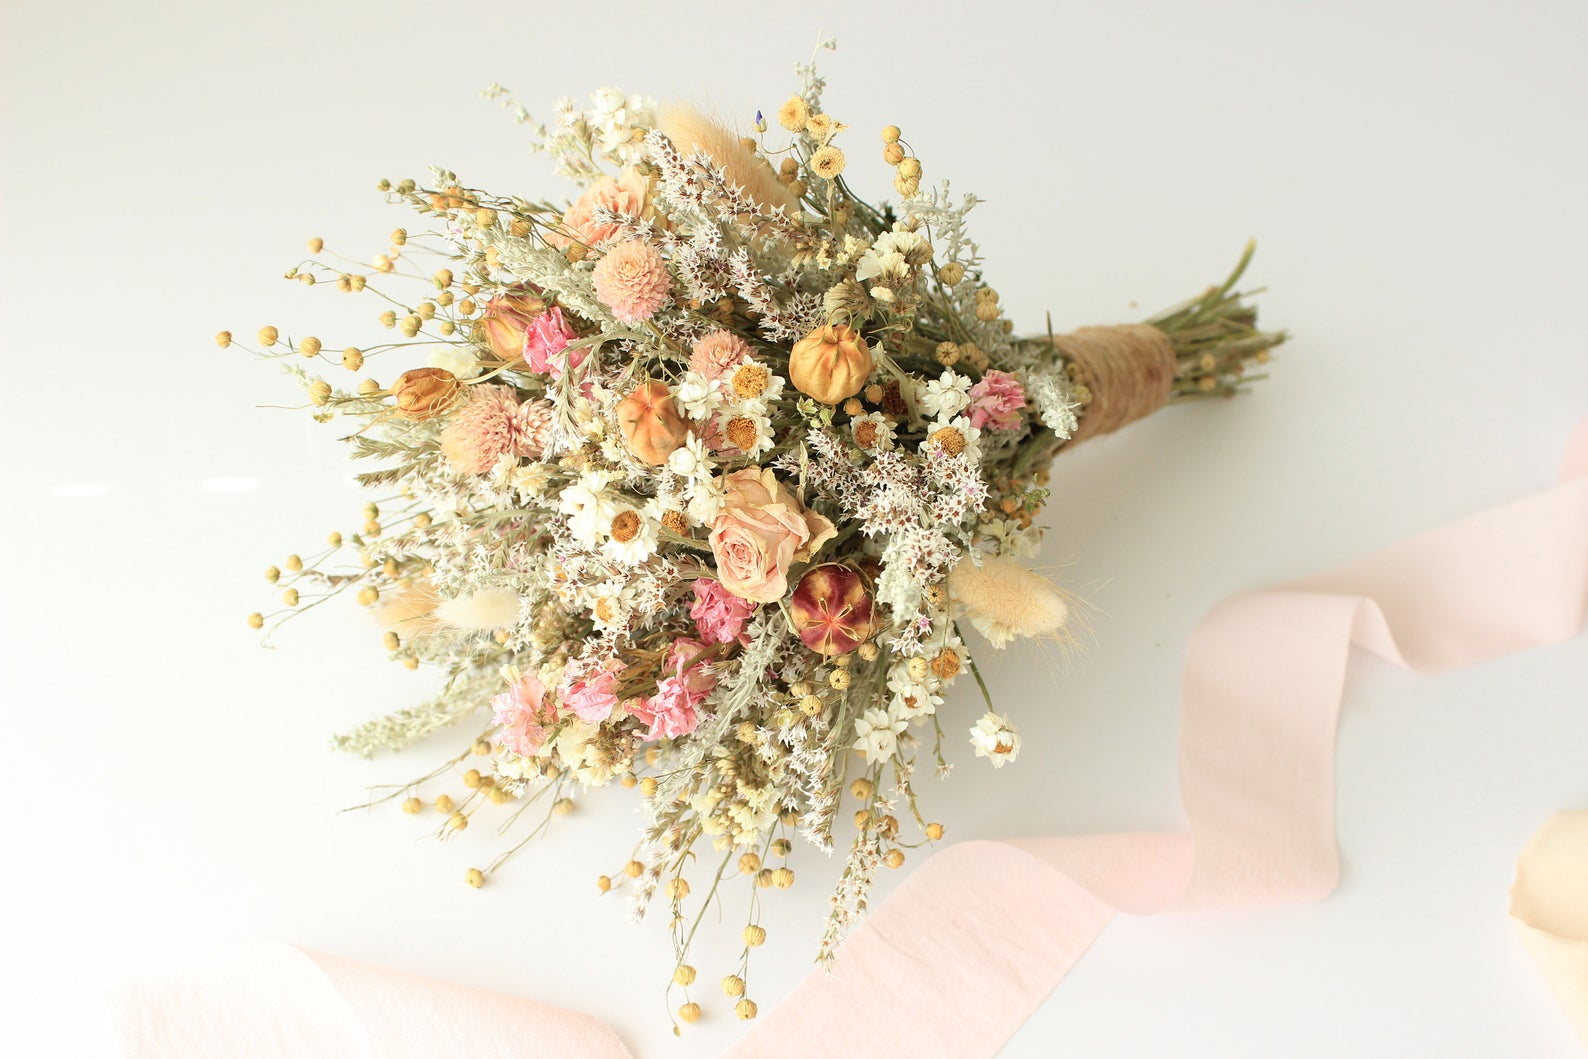 Pink & Peach Dried Flowers Bouquet